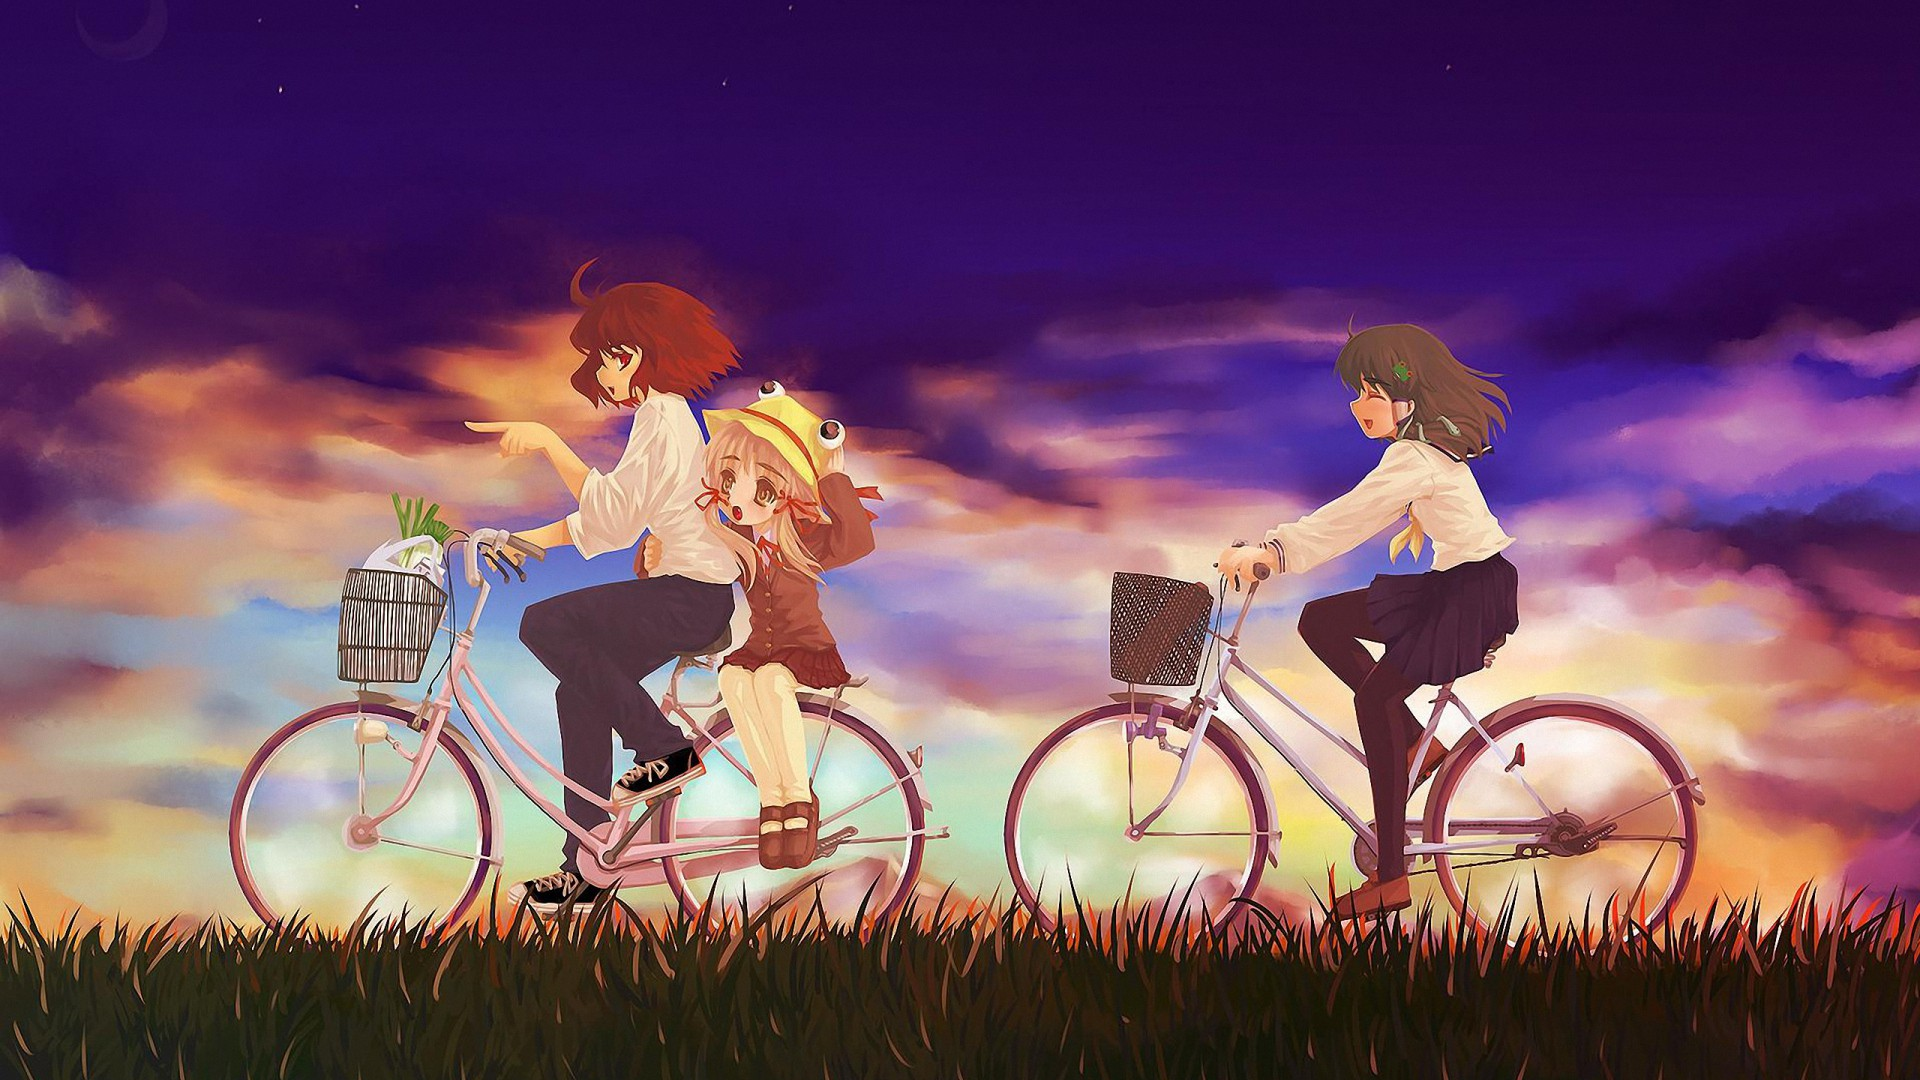 1080p Full Hd Wallpapers - Anime Wallpapers Friendship , HD Wallpaper & Backgrounds